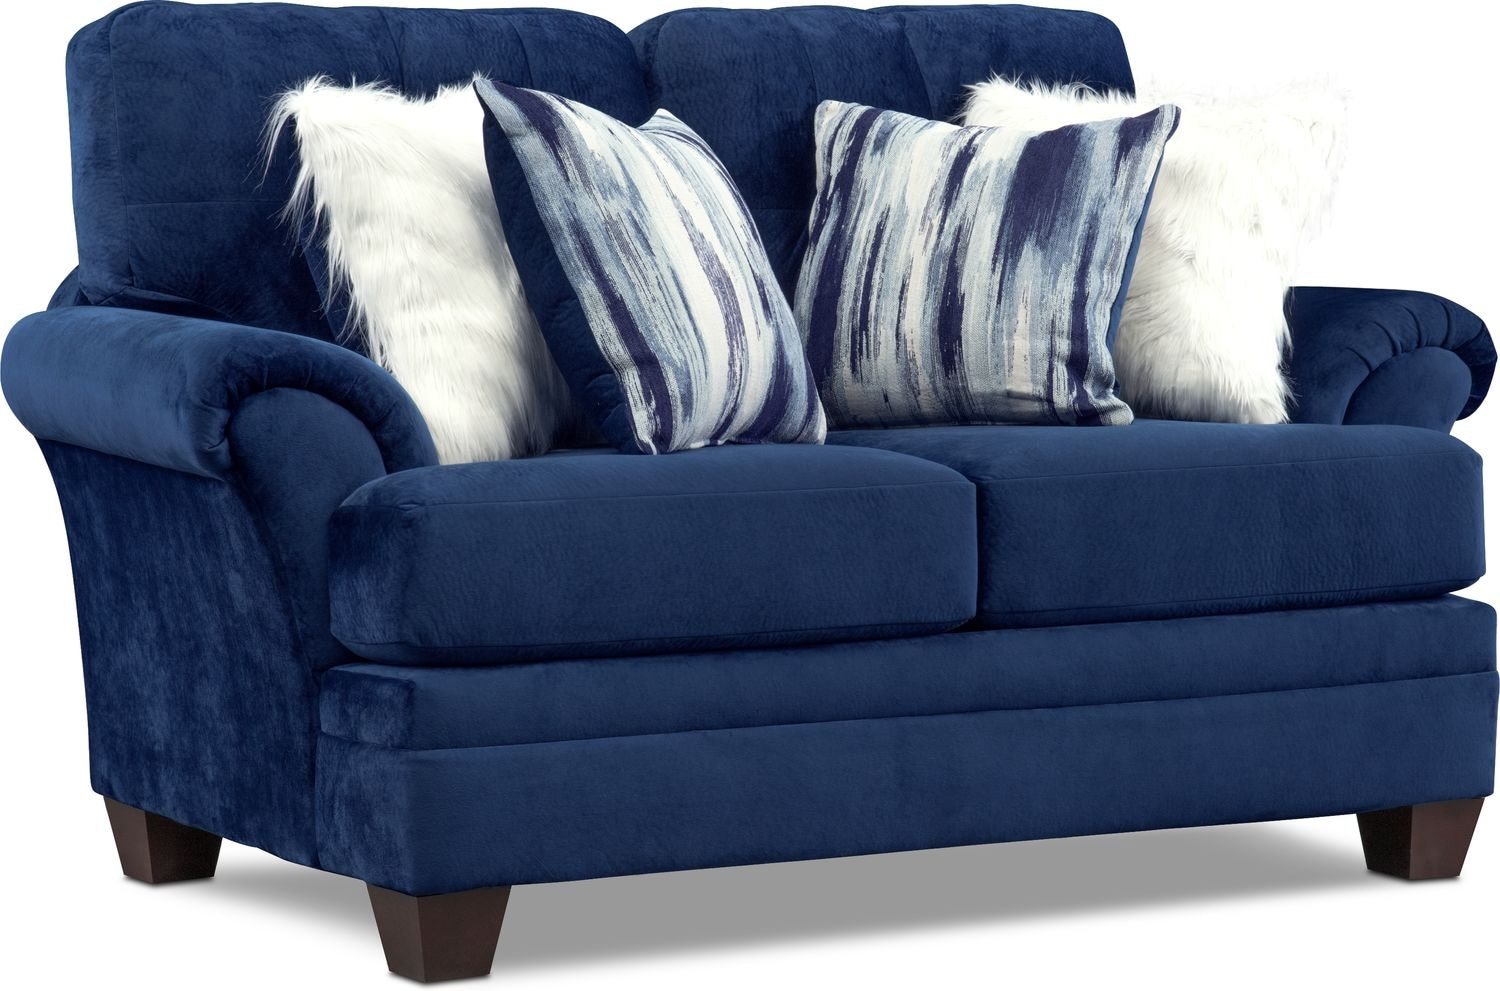 Living Room Furniture - Cordelle Loveseat